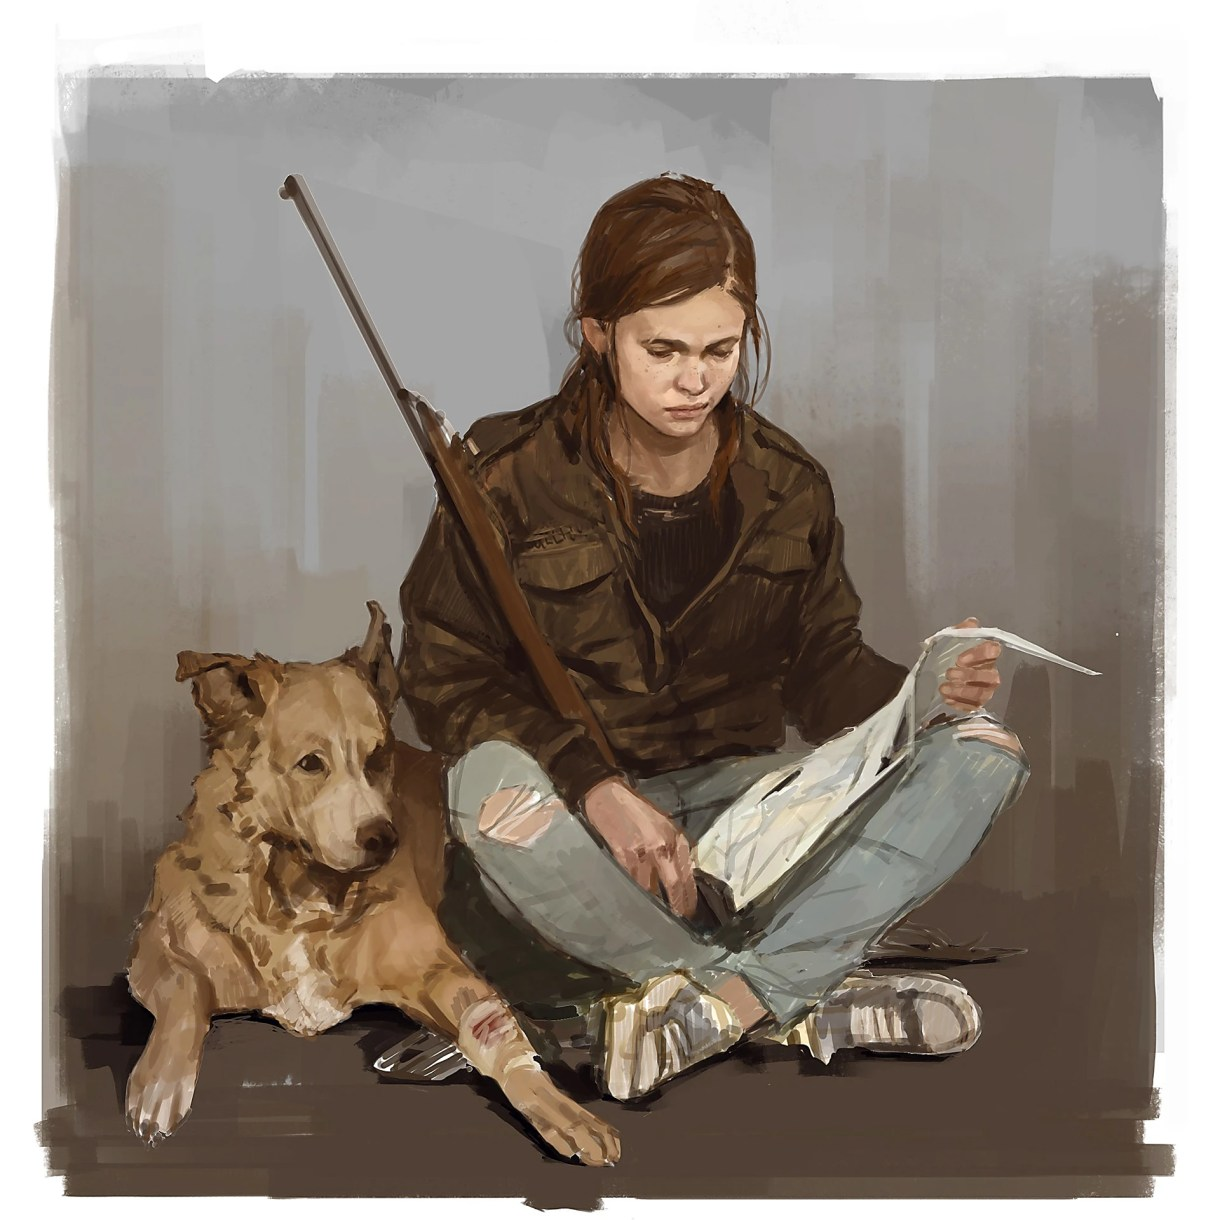 Ellie and Dog